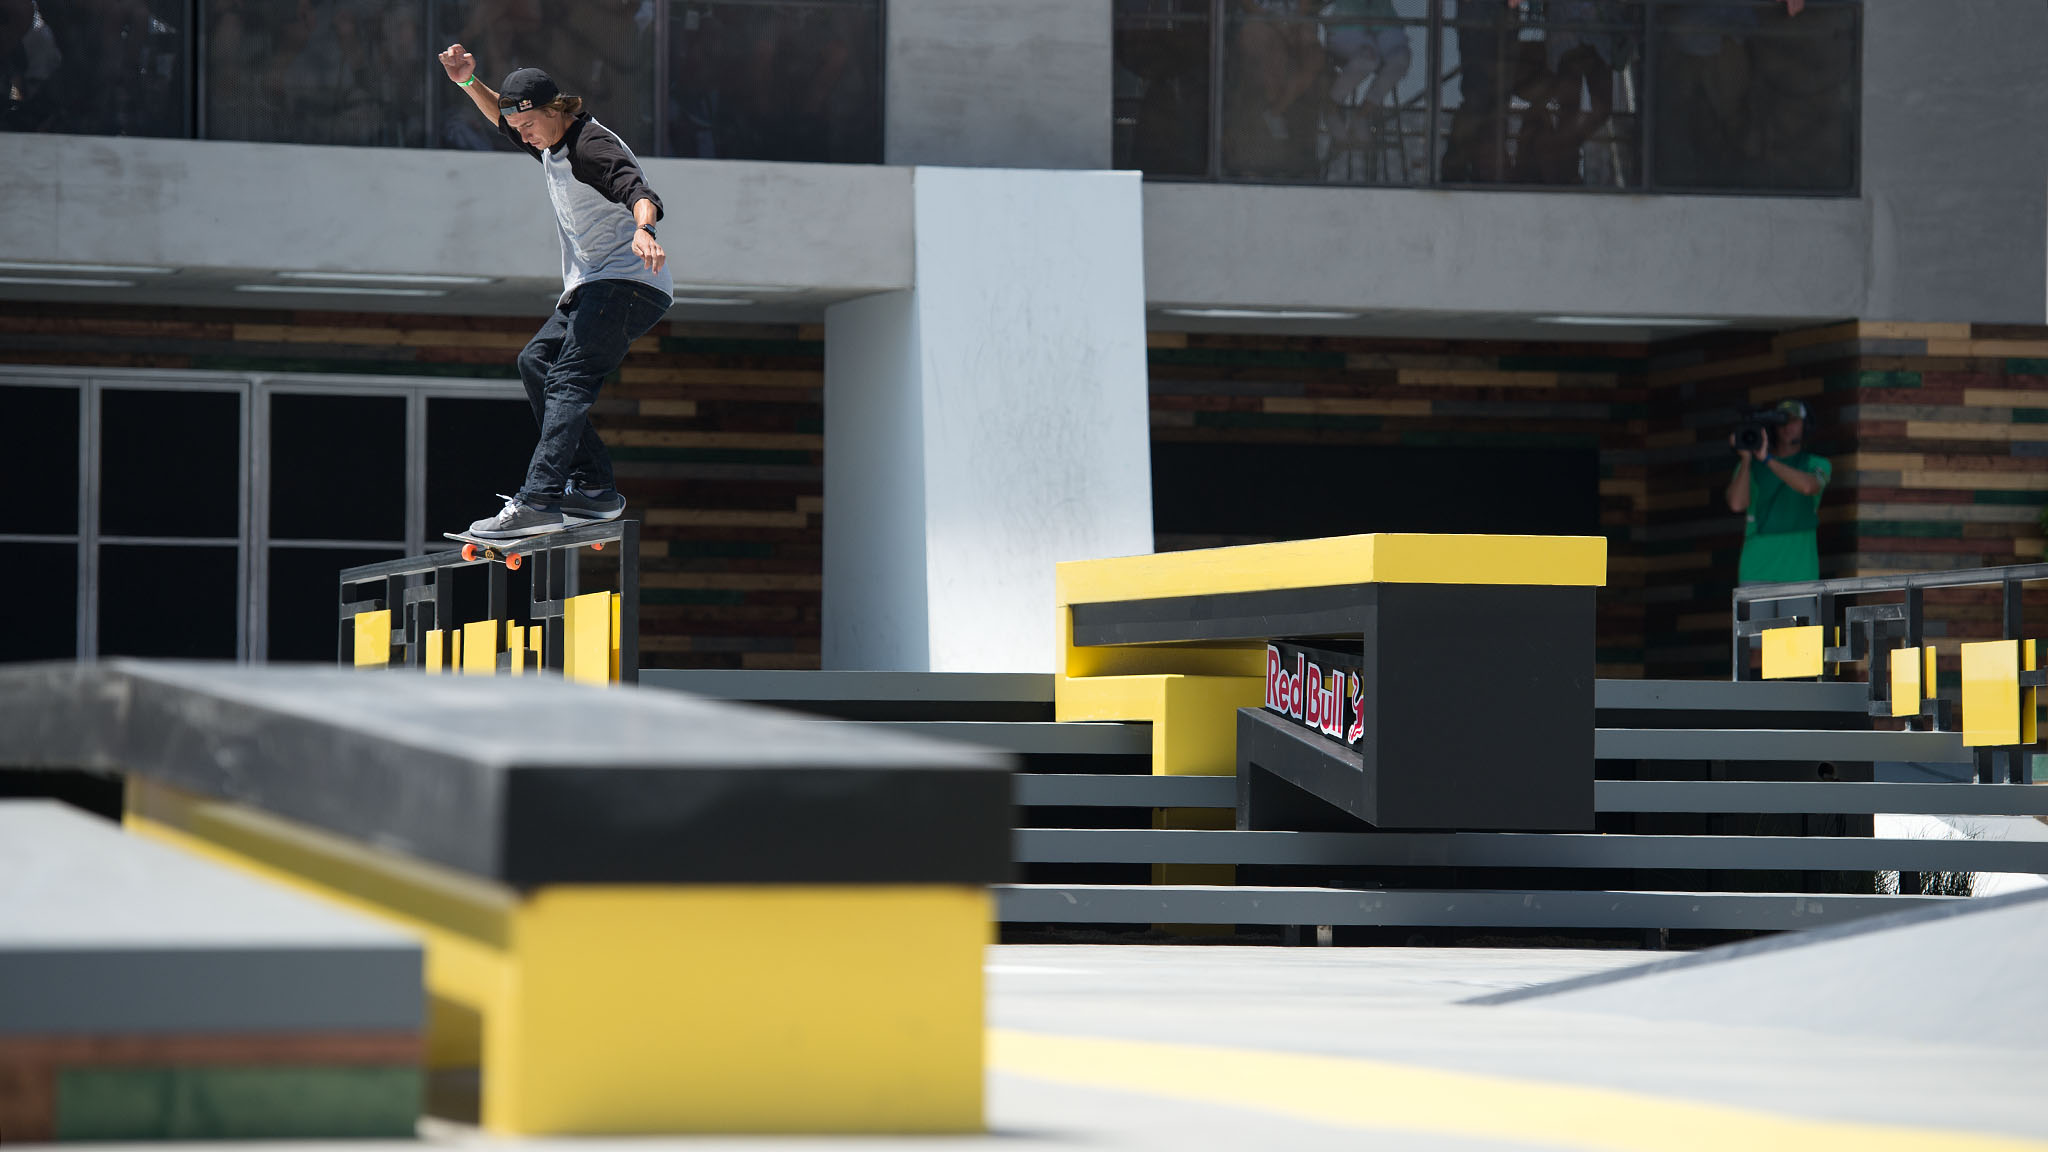 X Games Los Angeles kicked off Thursday morning with SLS Select, where Ryan Decenzo qualified in the top position and earned himself a spot in the main Street League at X Games event on Friday.